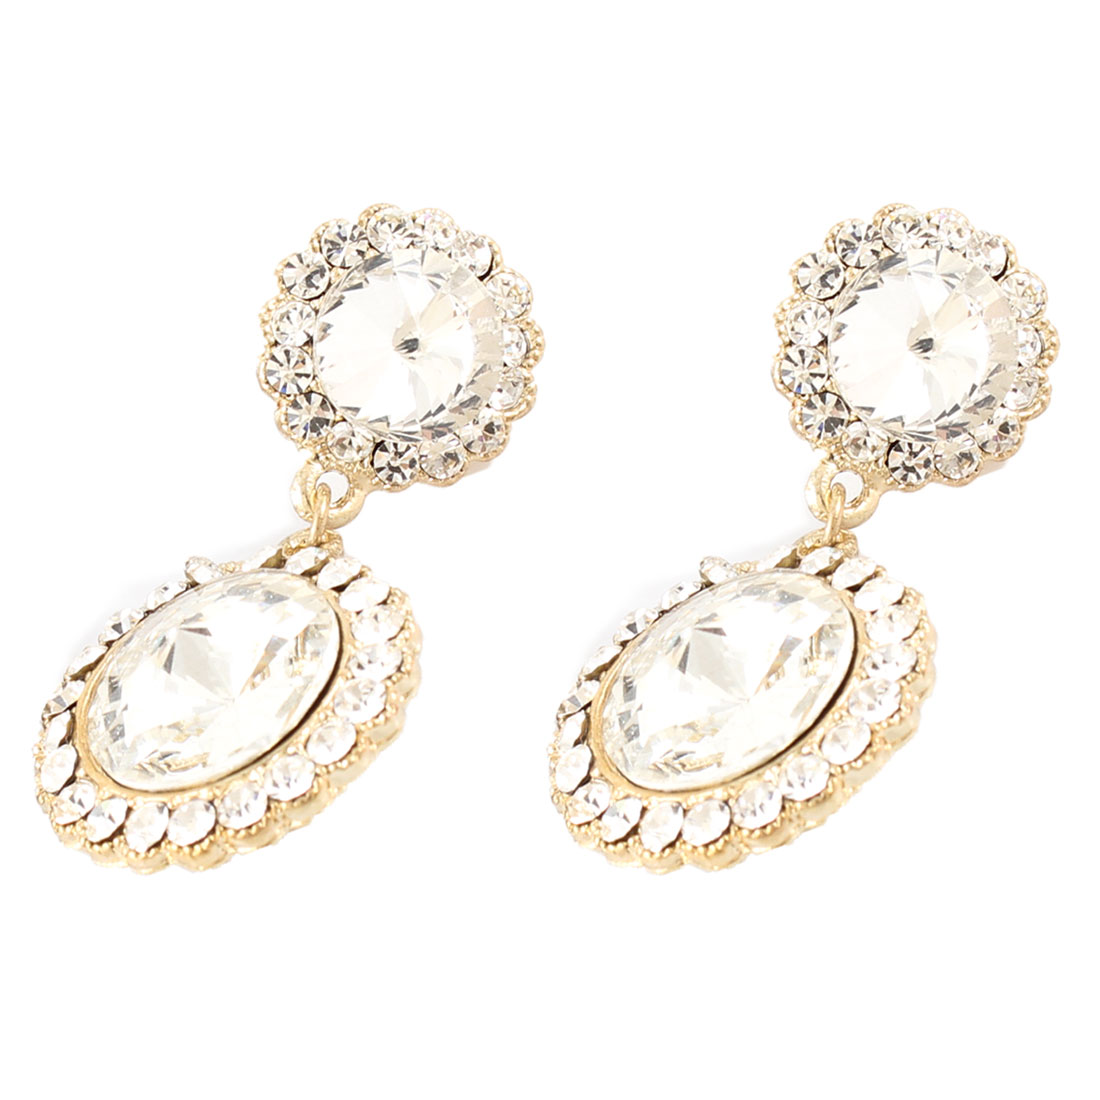 Ladies Gold Tone Glittery Rhinestone Decor Stud Earrings Pair